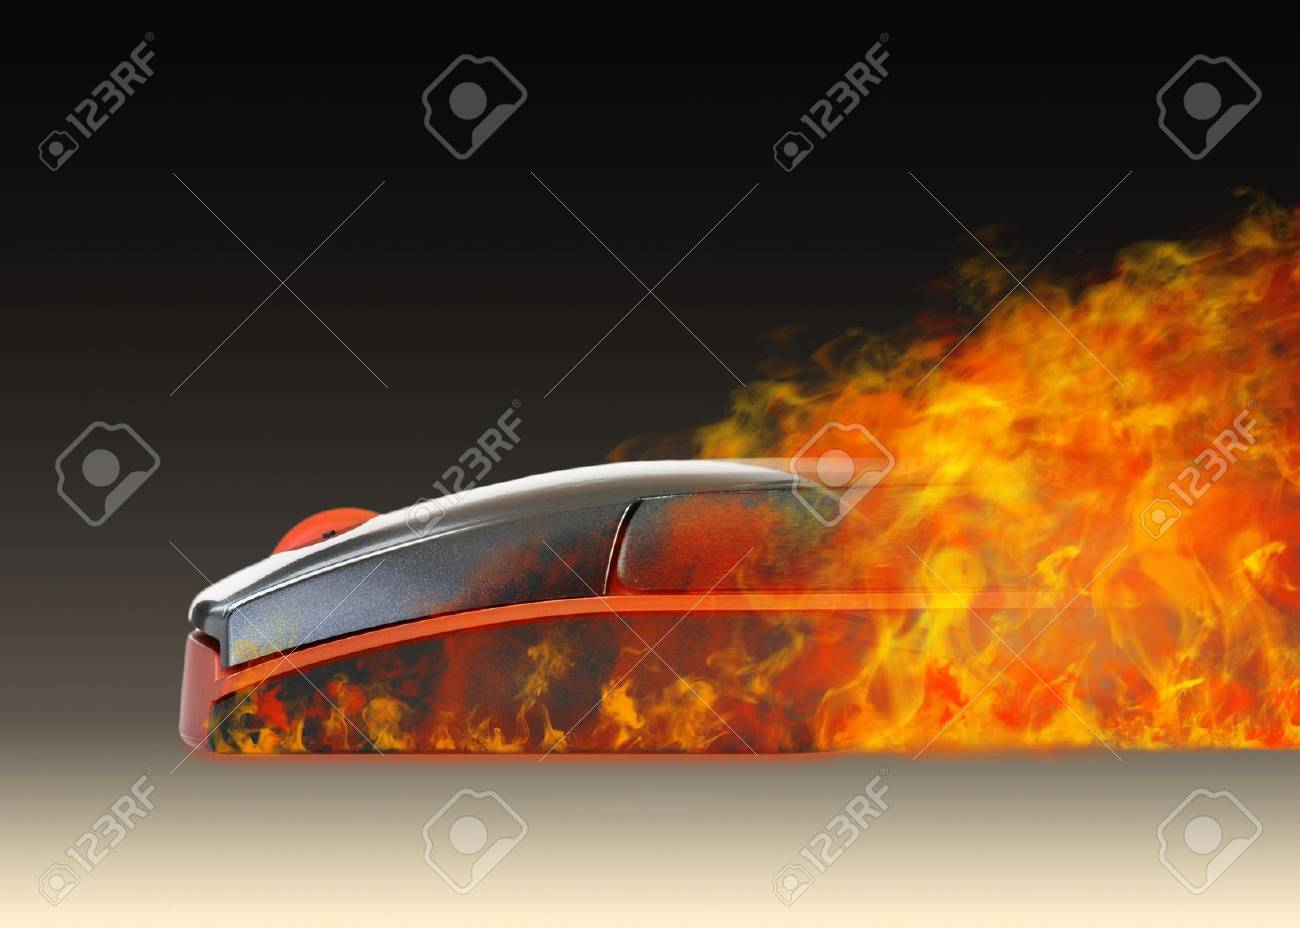 Super Mouse - The Mouse with a fire effect Stock Photo - 8494717